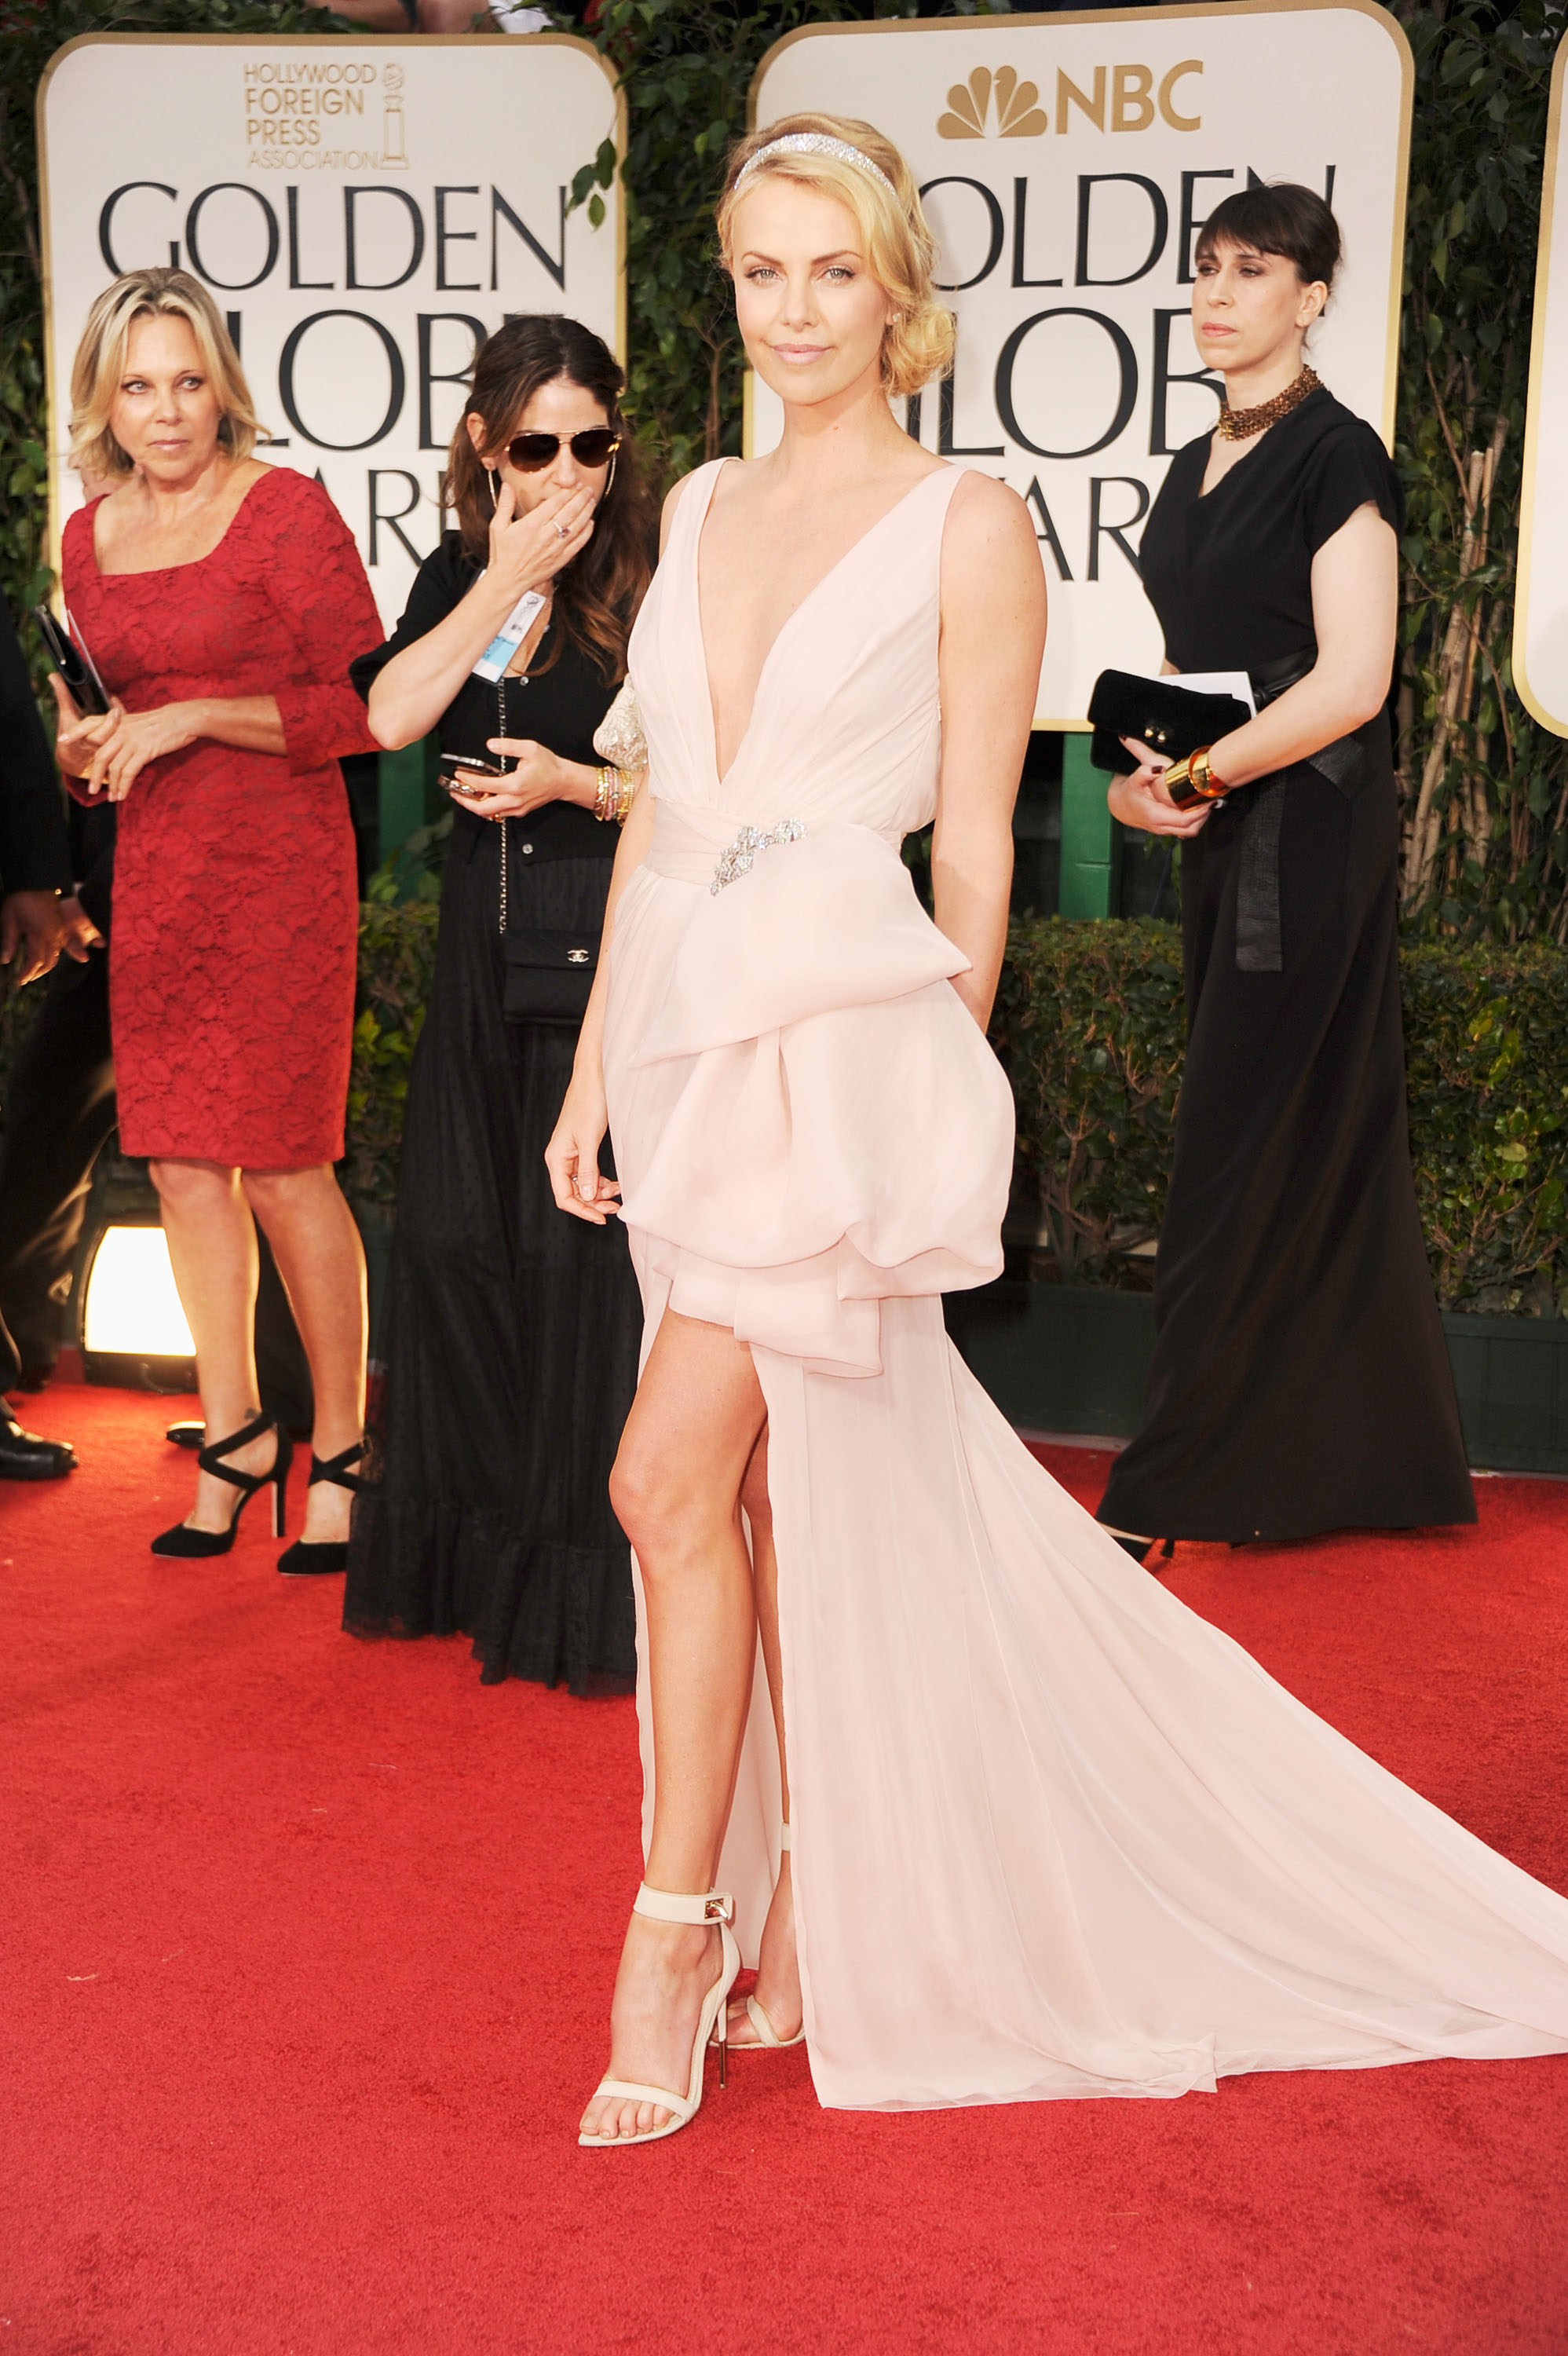 Charlize Theron on the red carpet.